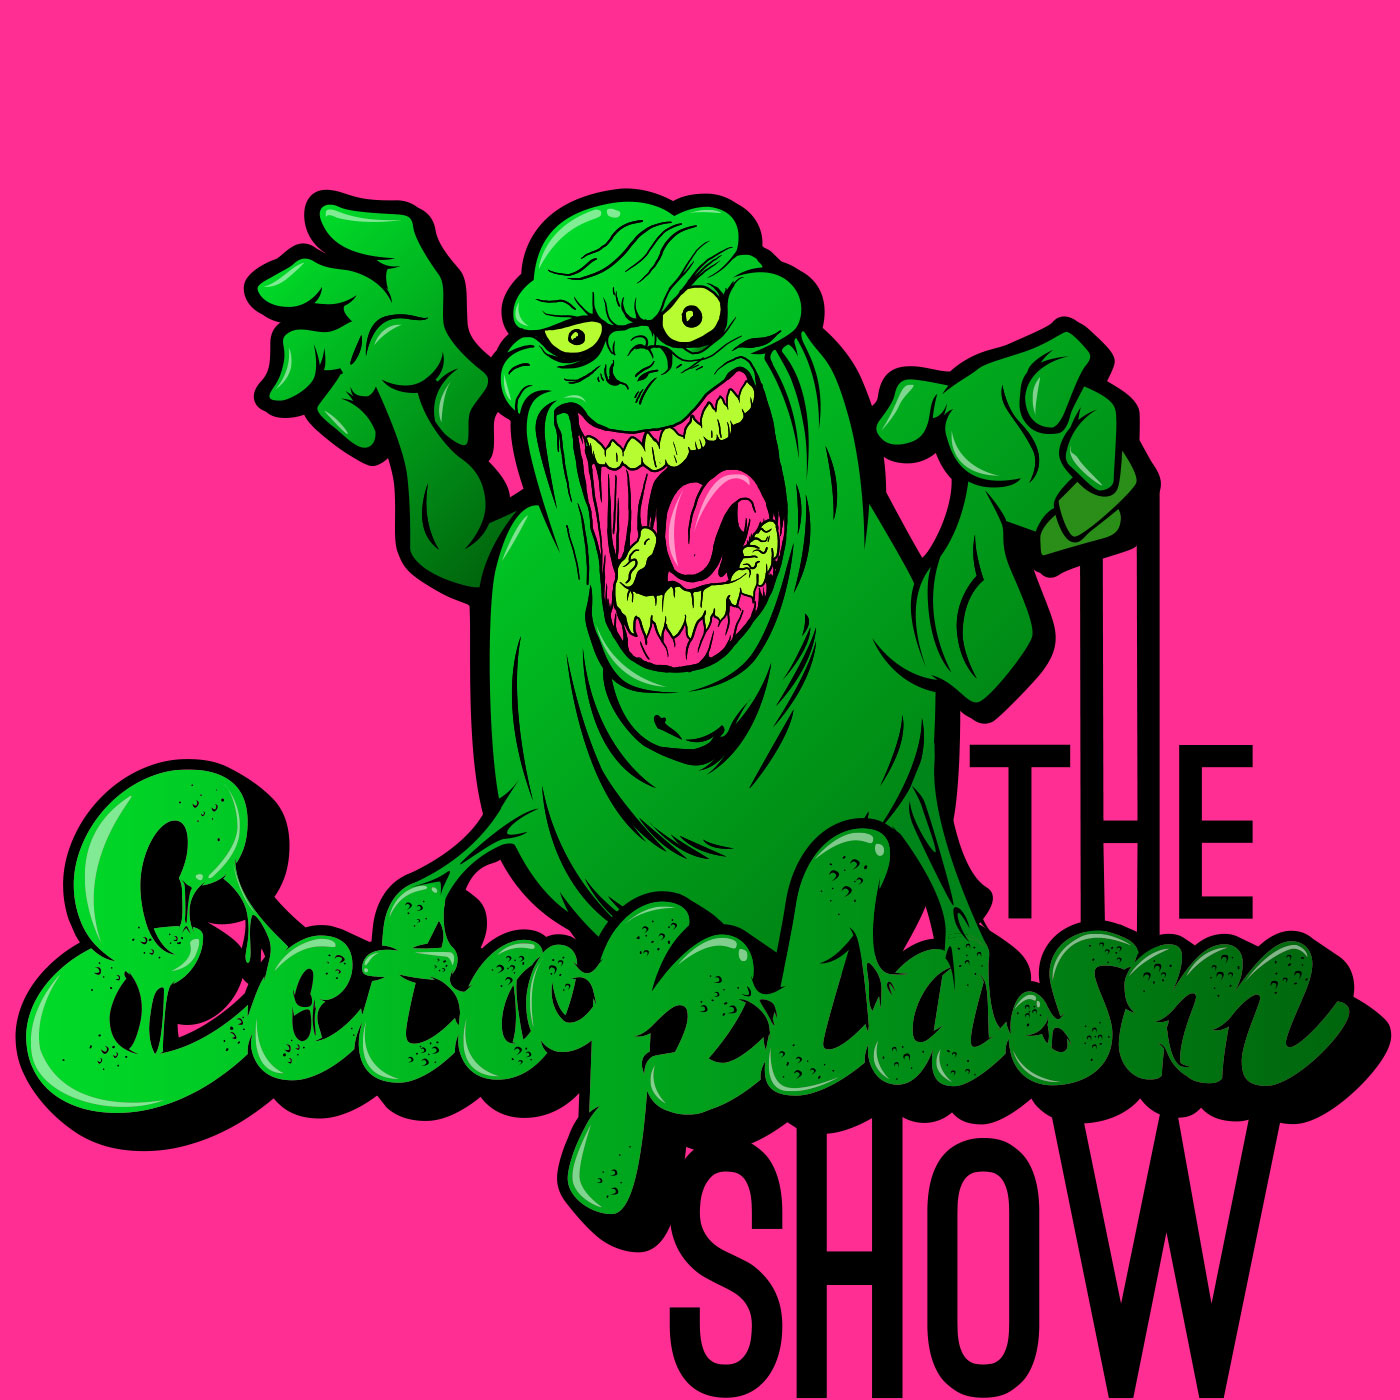 124 - Ectoplasm - Paranormal News For The Week Of 07-10-2016